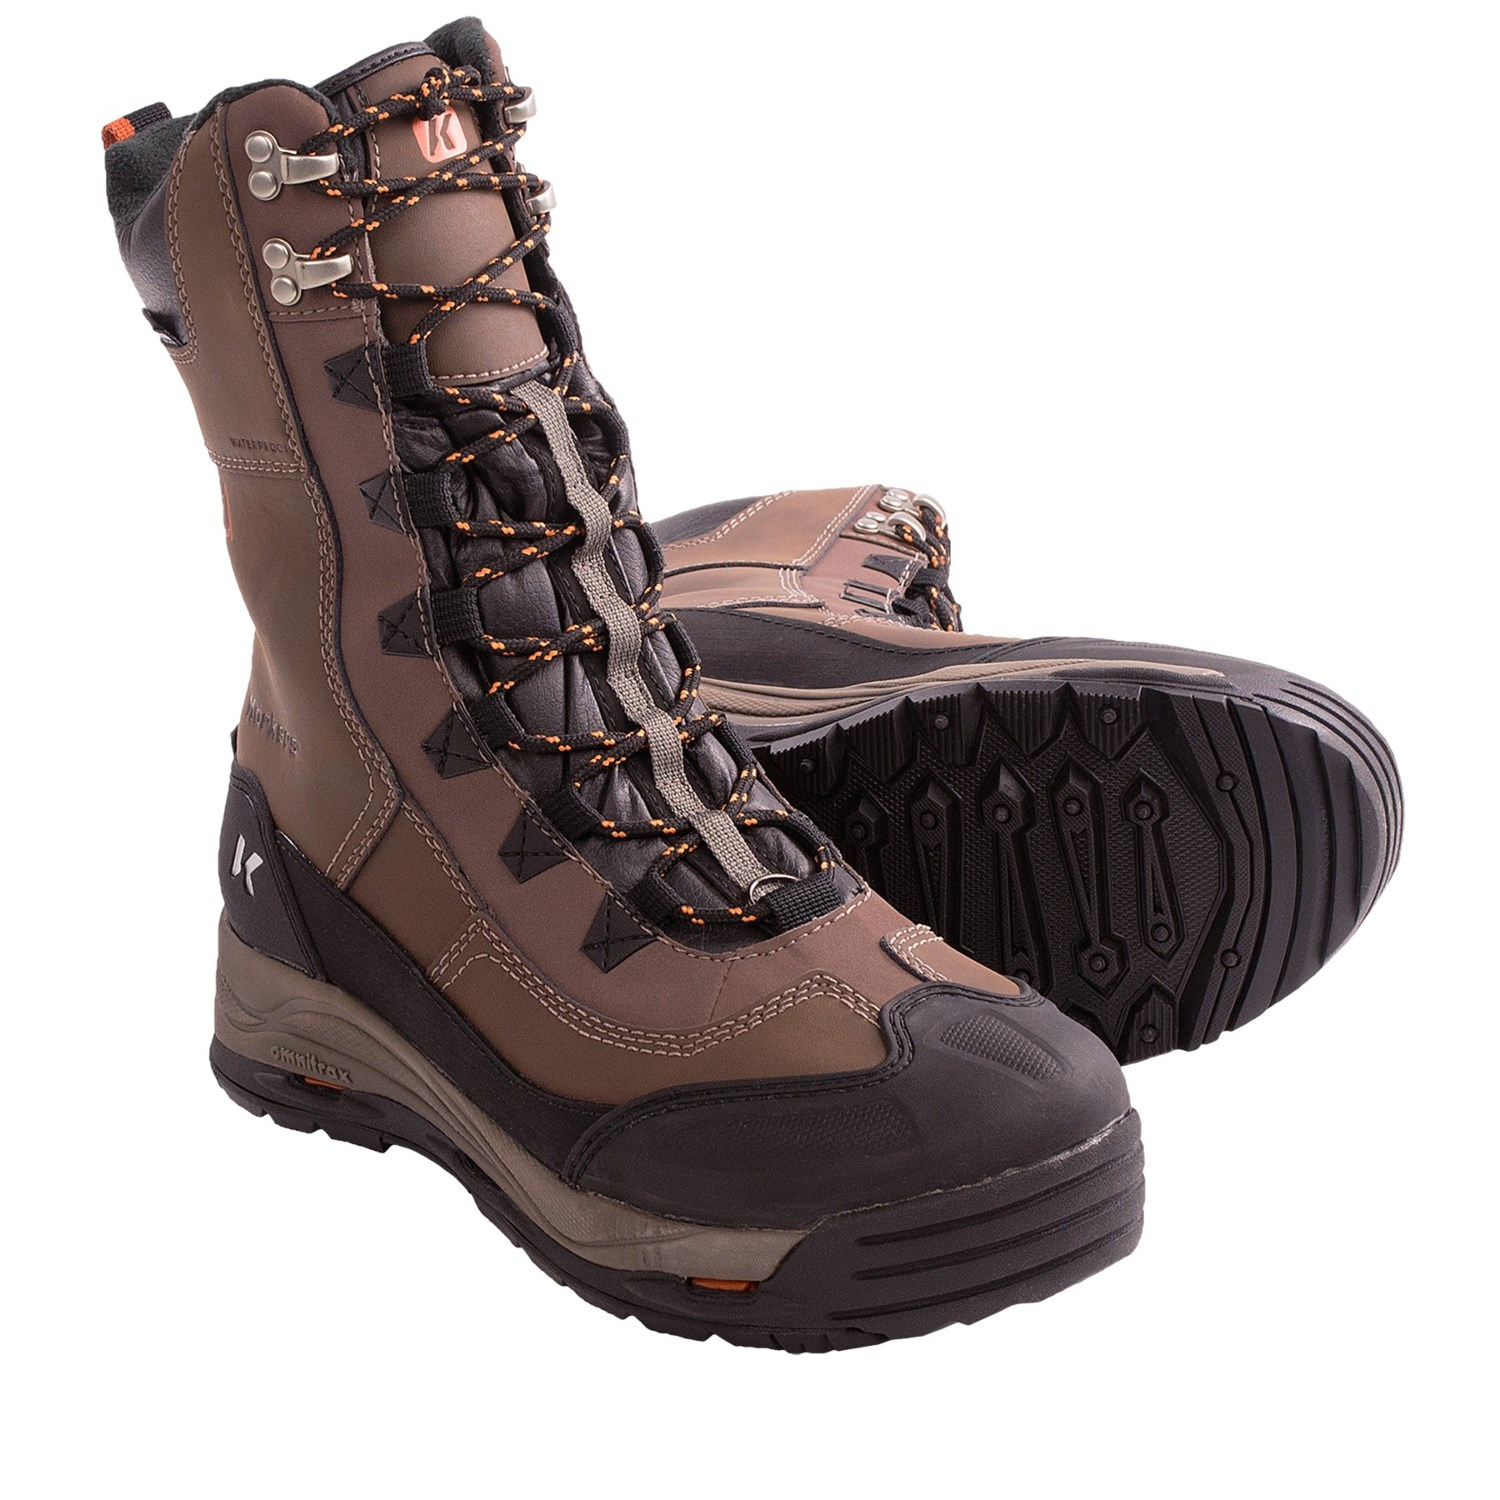 Men's Waterproof Snow Boots Clearance | Homewood Mountain Ski Resort